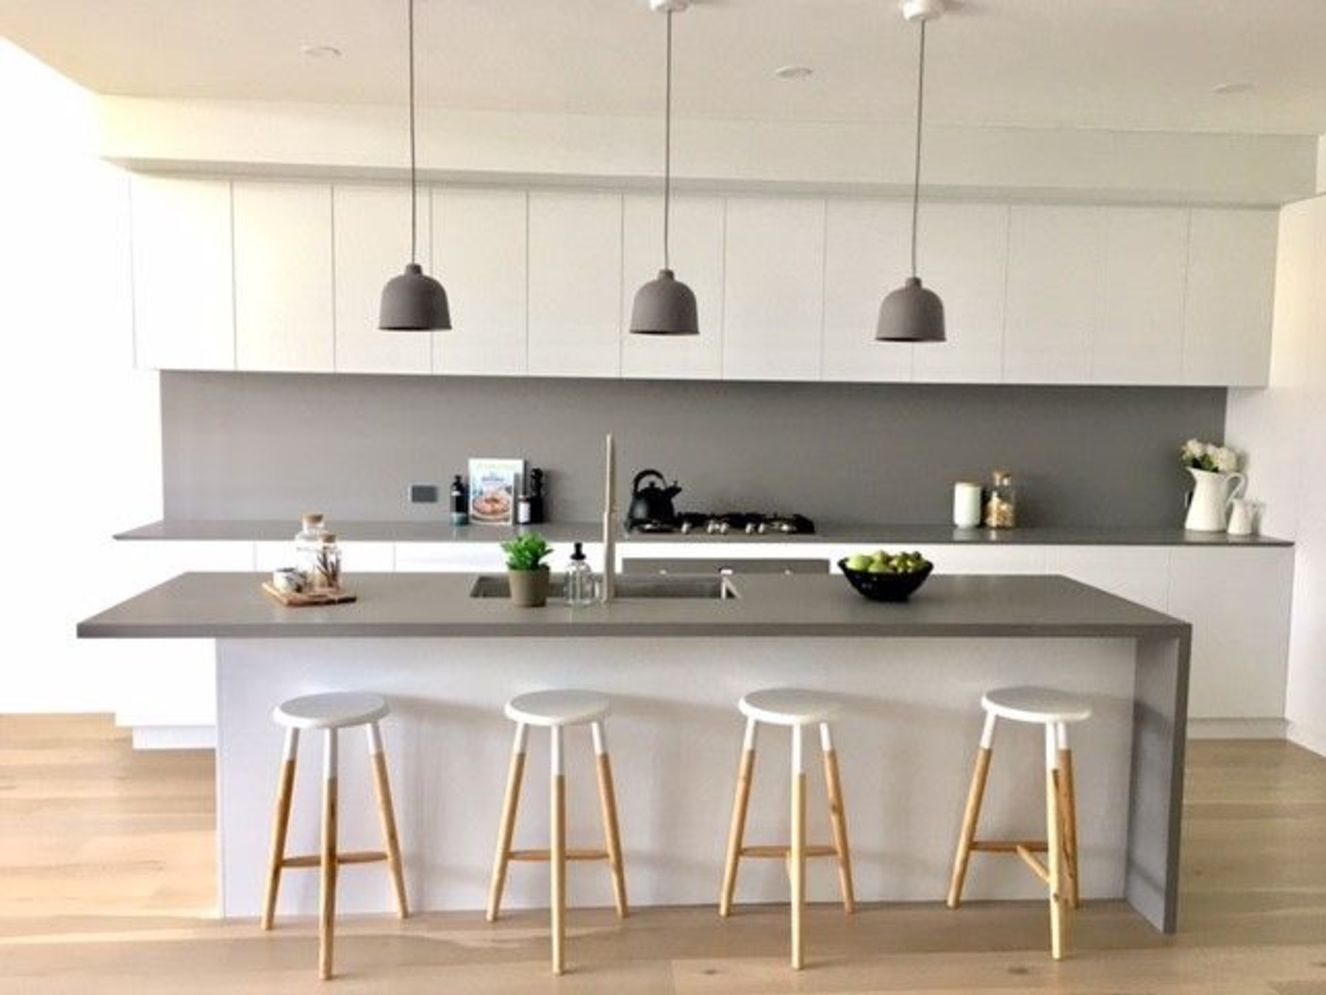 Classy kitchen styles in bold display maximizing concrete benchtop designs Image 13